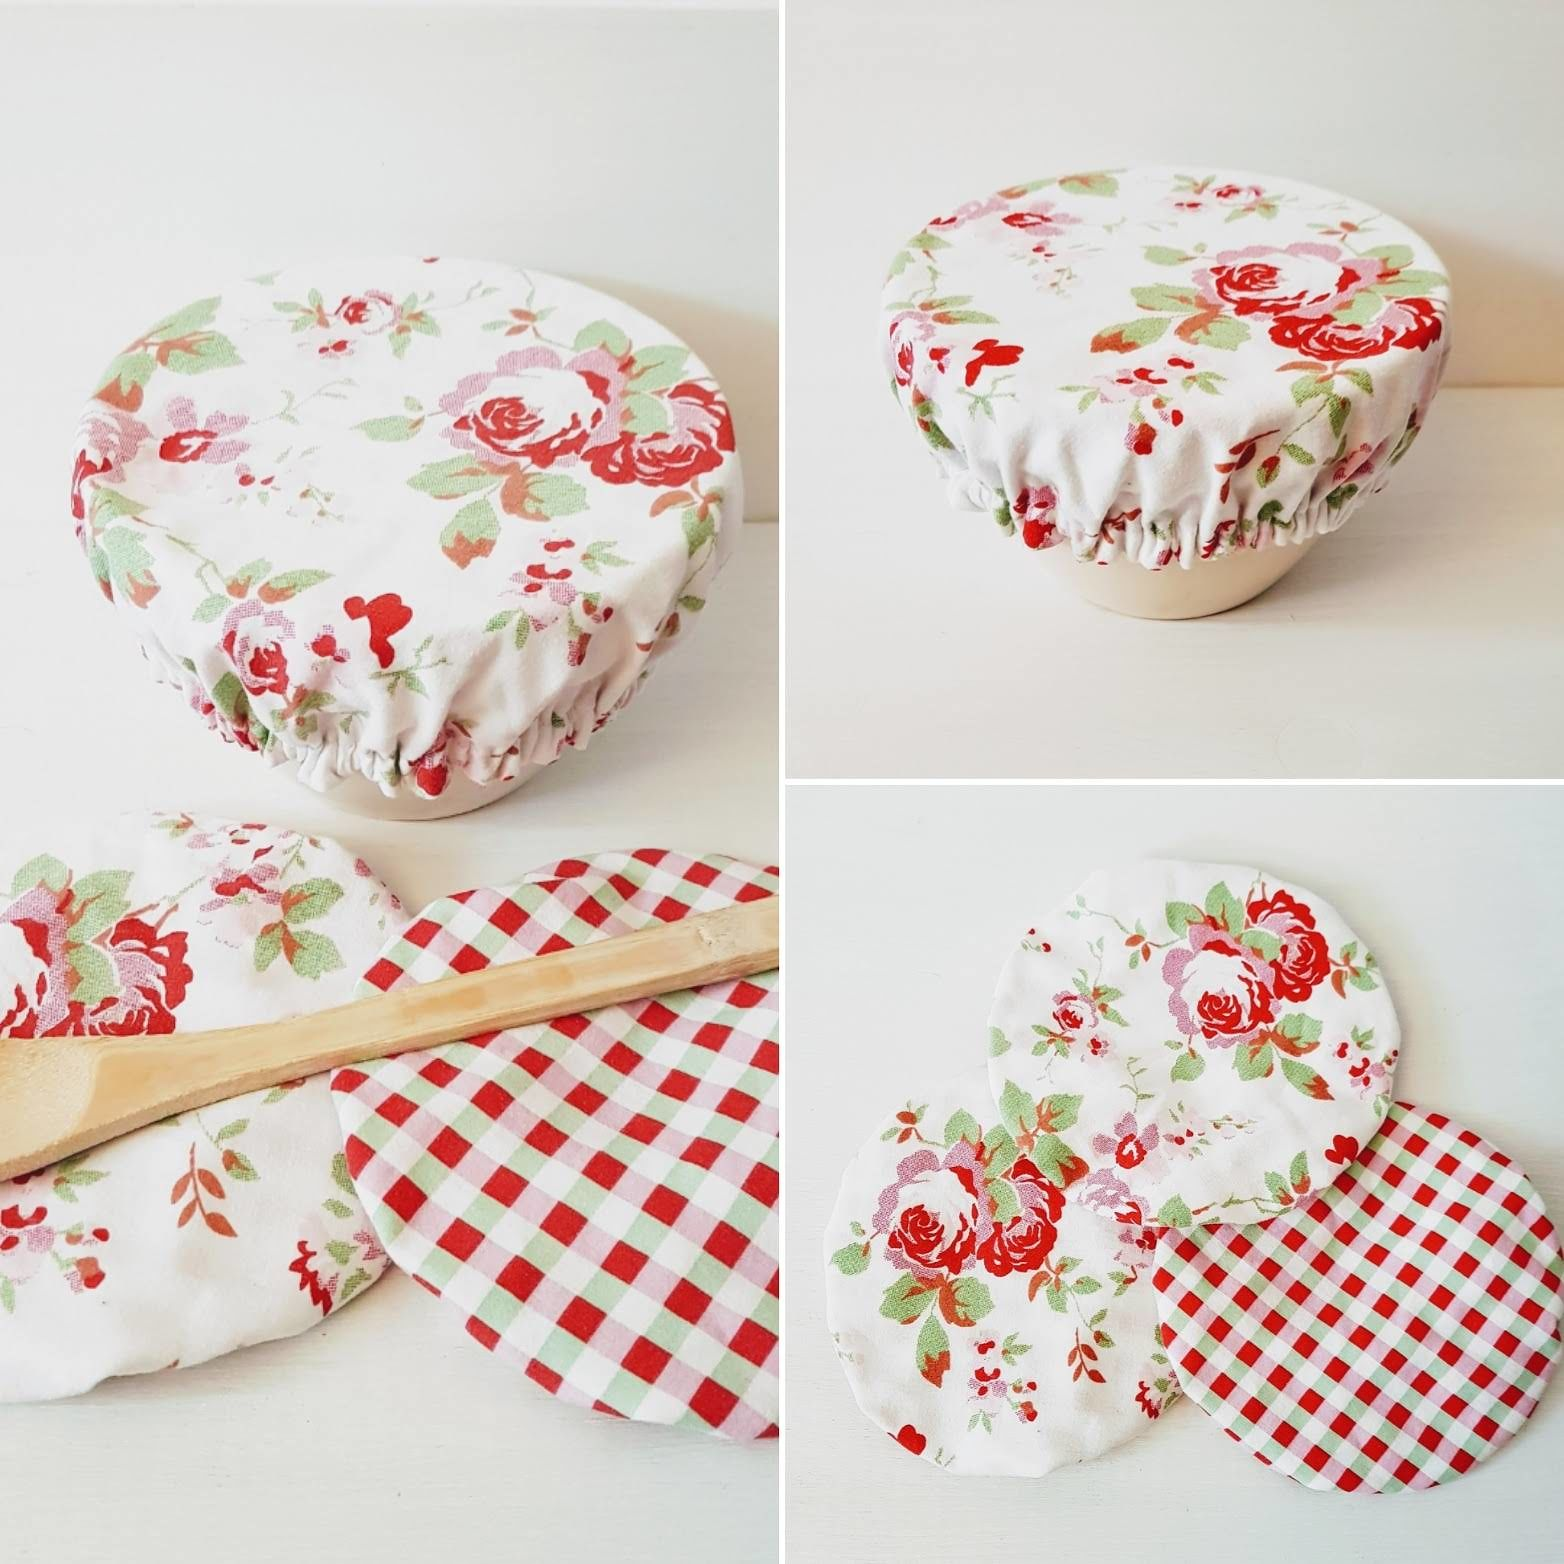 Plastic Free Bowl Covers Kitchen Decor Food Covers Eco Friendly Repurposed Gifts